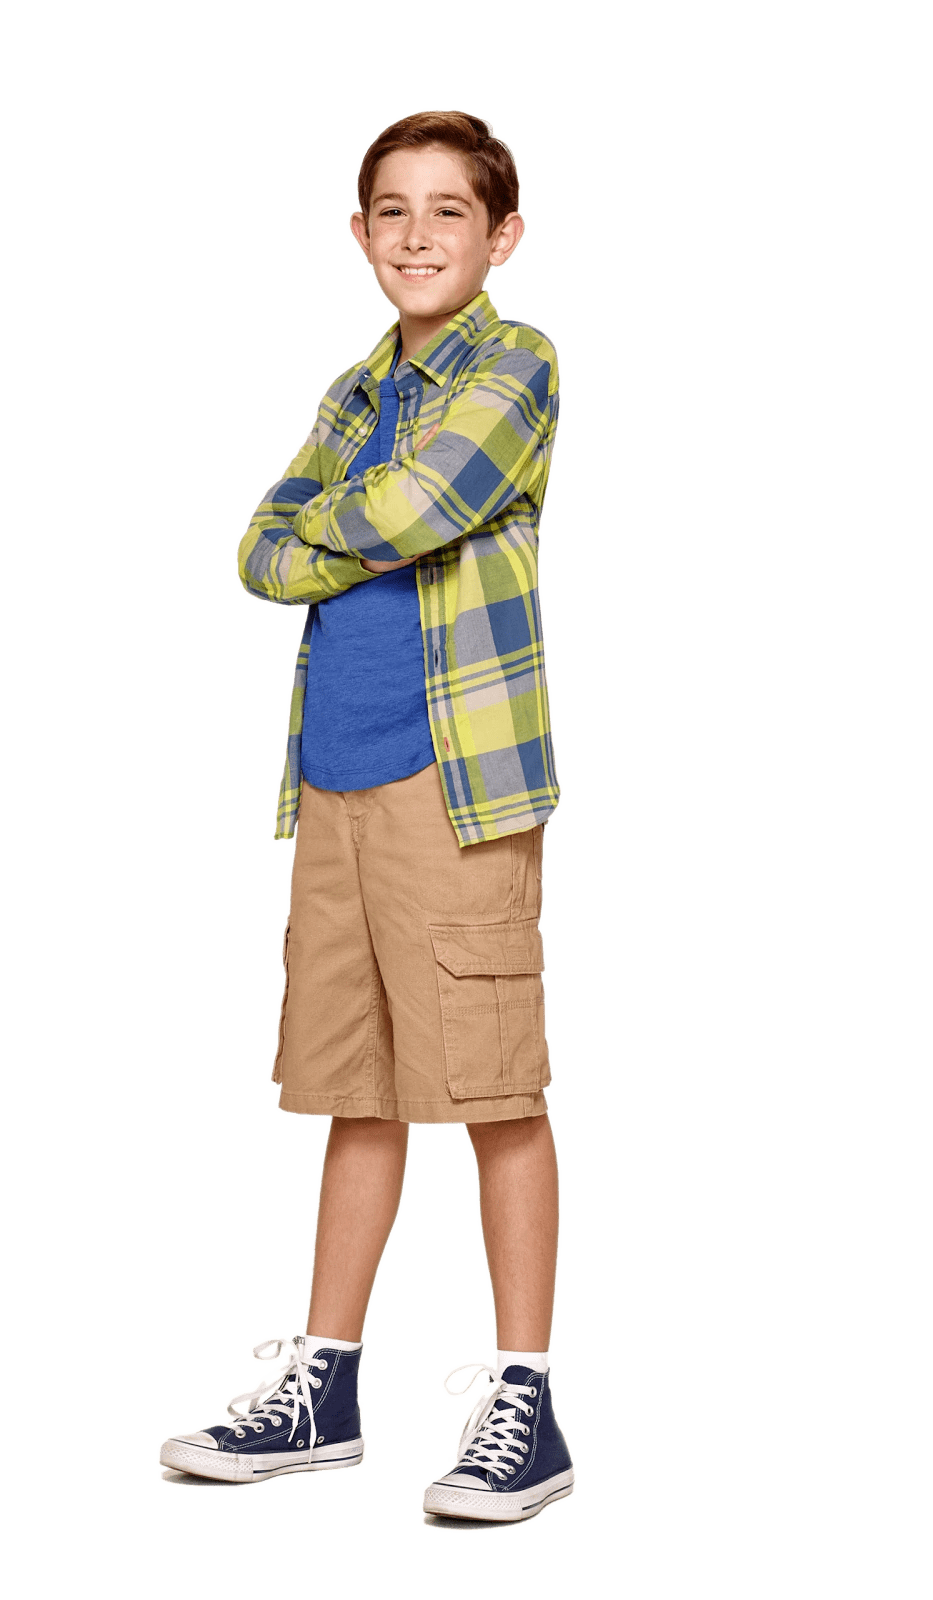 List of The Thundermans characters - Wikipedia